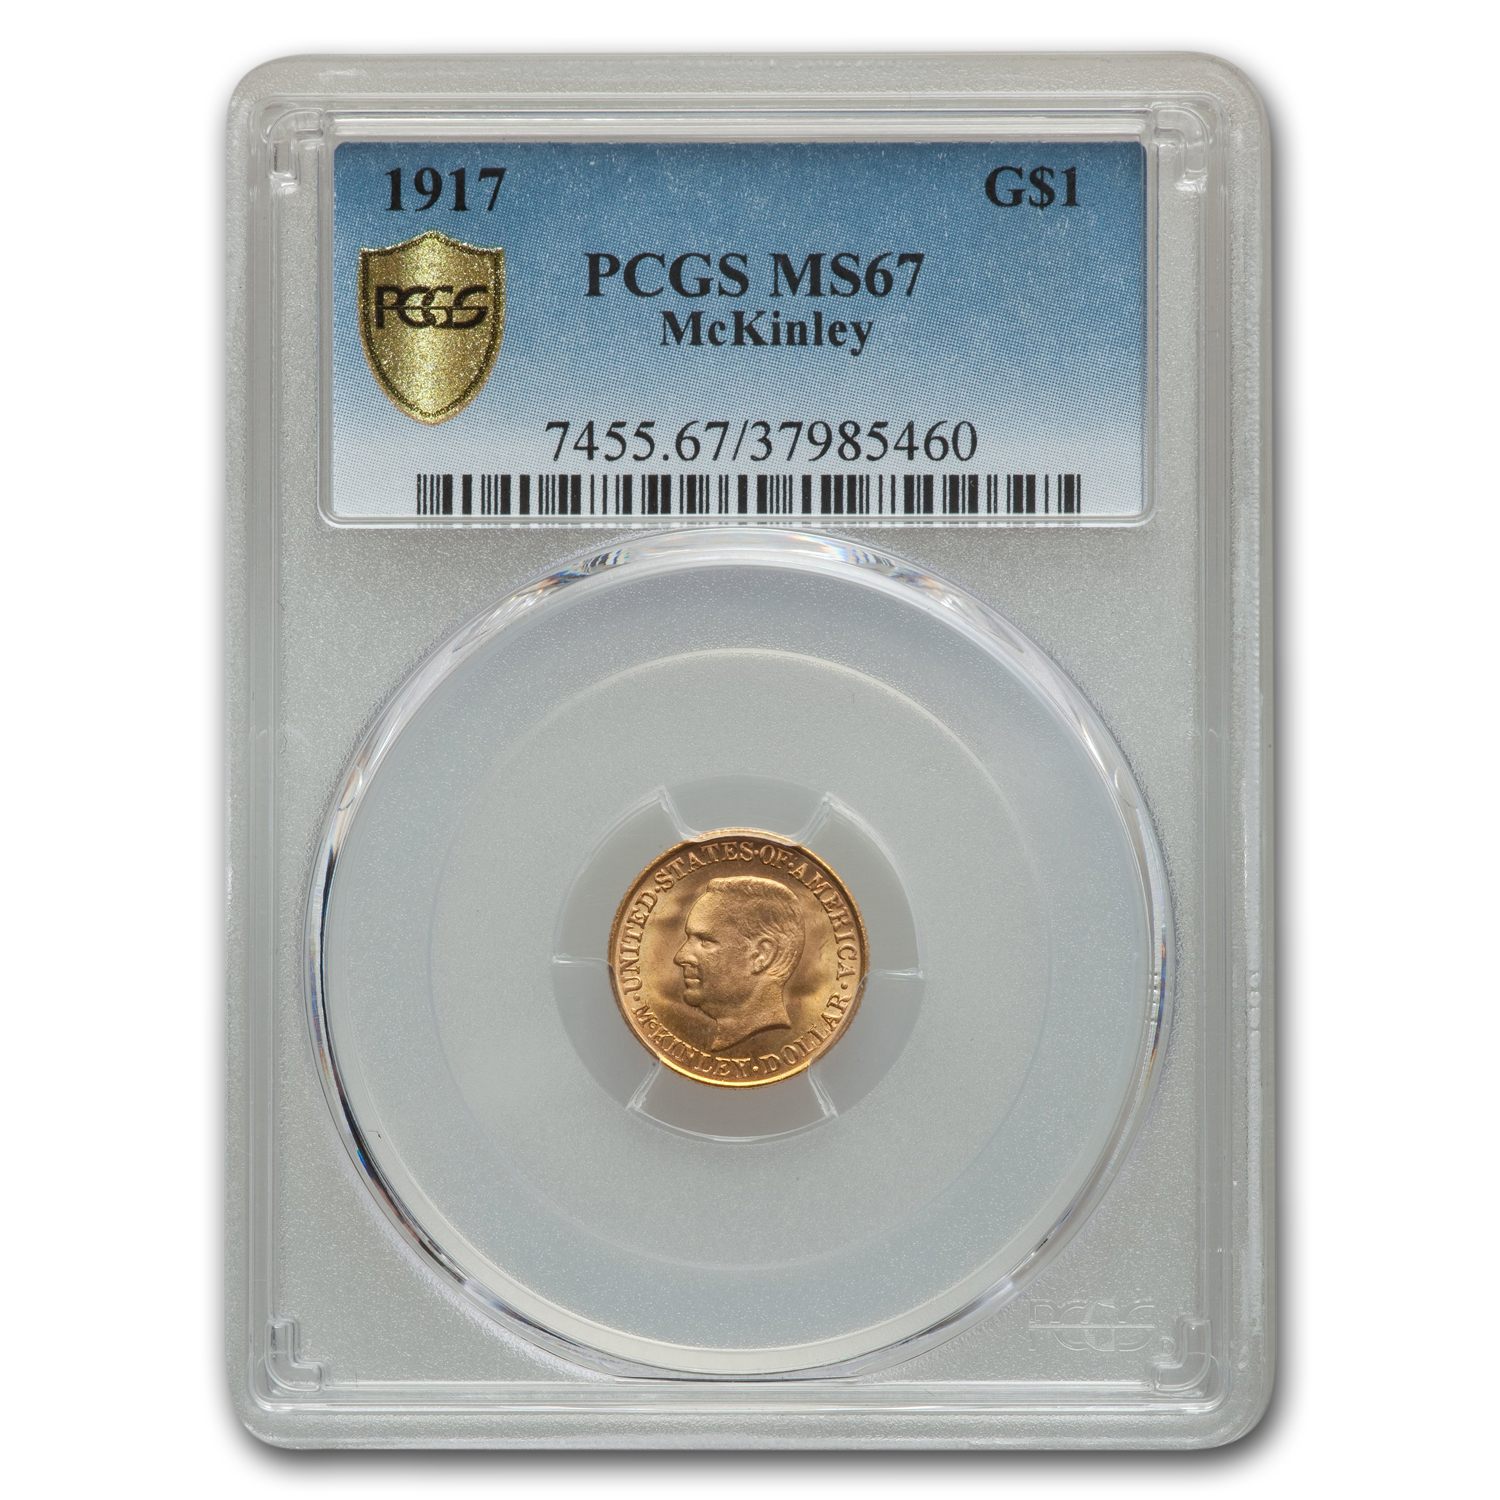 1916 Gold $1.00 McKinley MS-67 PCGS